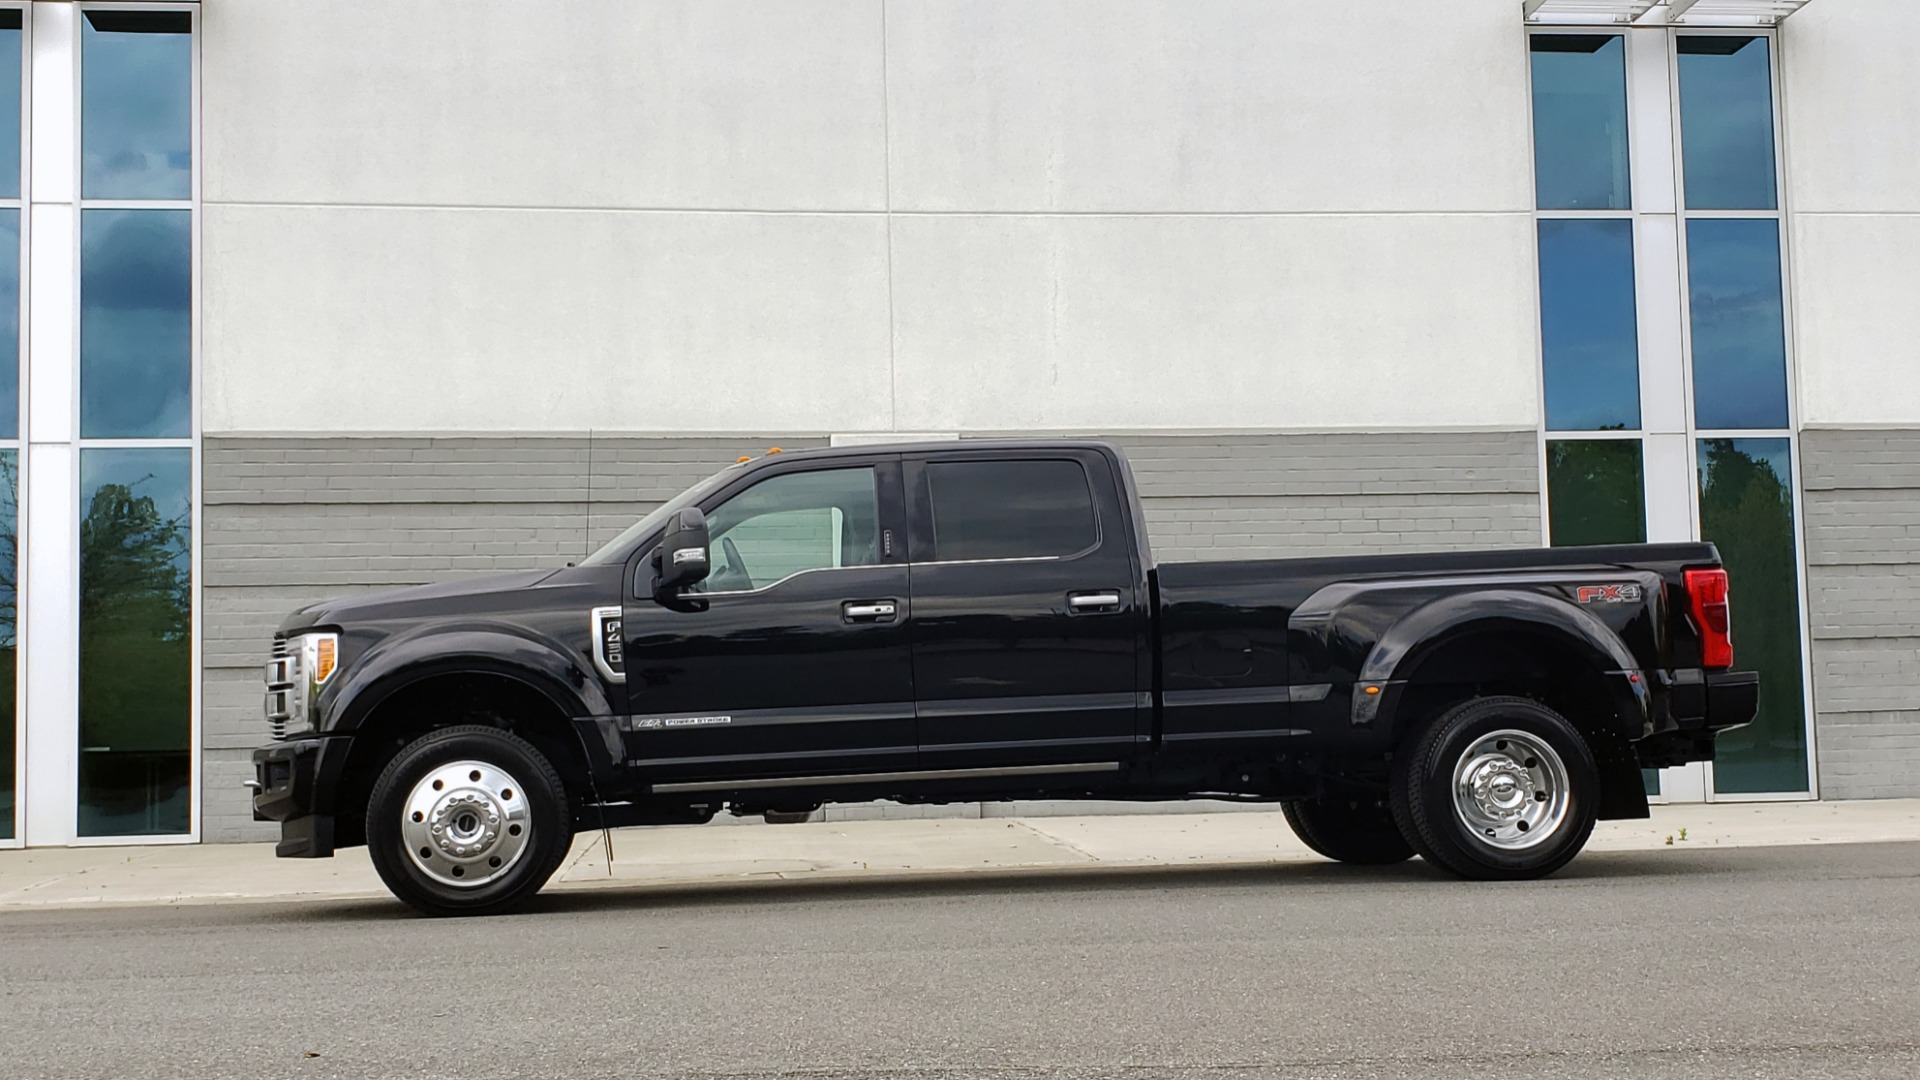 Used 2019 Ford SUPER DUTY F-450 DRW LIMITED / 4X4 / CREWCAB 176IN WB / LOADED / LOW MILES for sale Sold at Formula Imports in Charlotte NC 28227 3